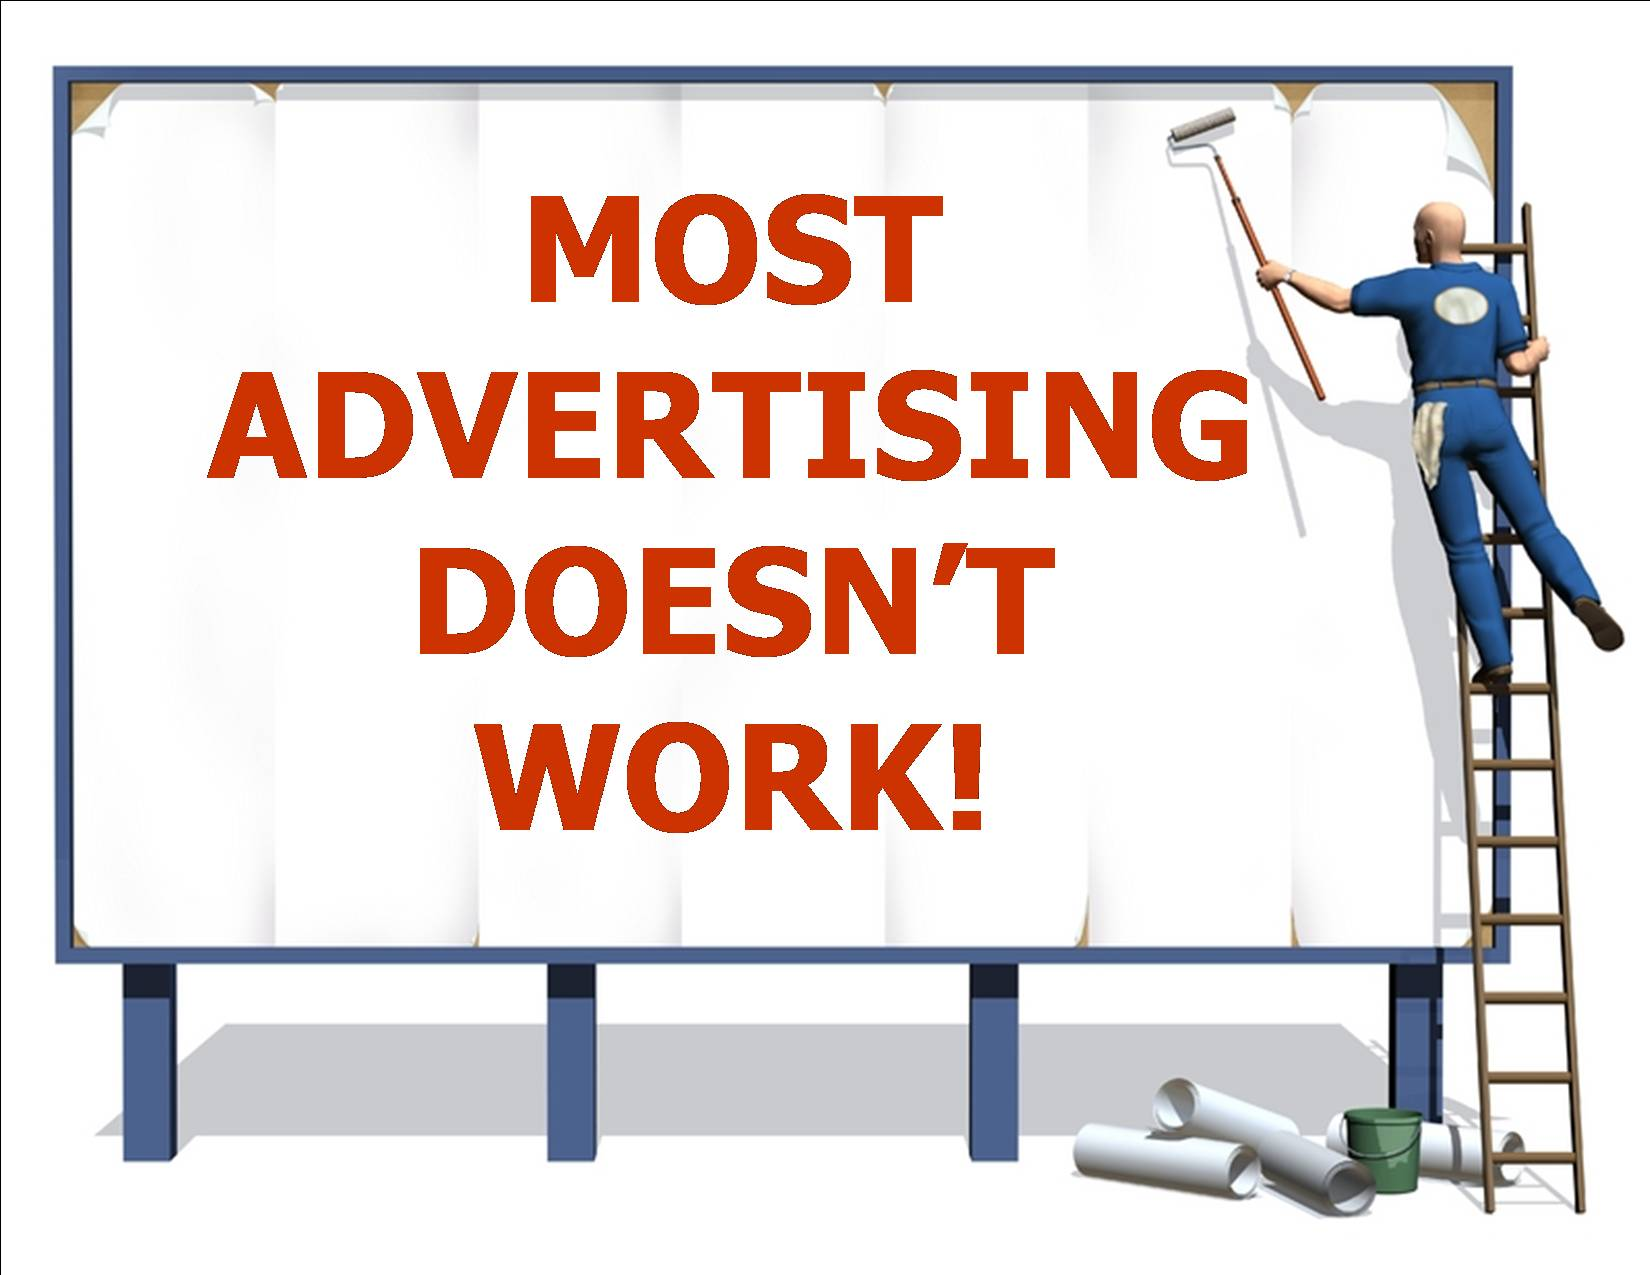 role of ethics in advertising